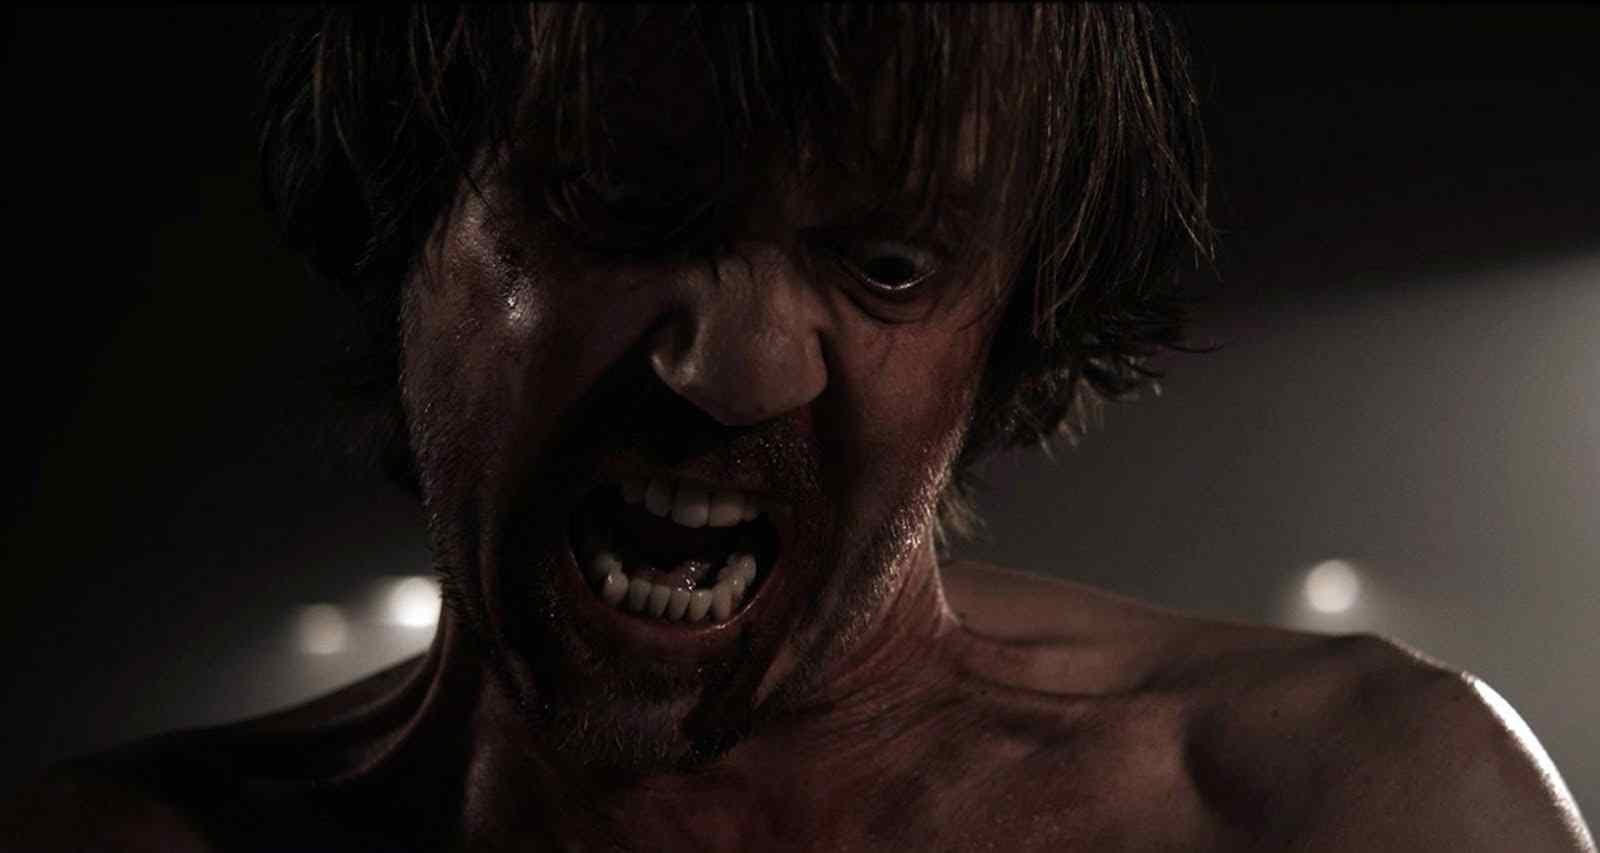 Named the most disturbing movie of all time, A Serbian Film directed by Srdjan Spasojevic.